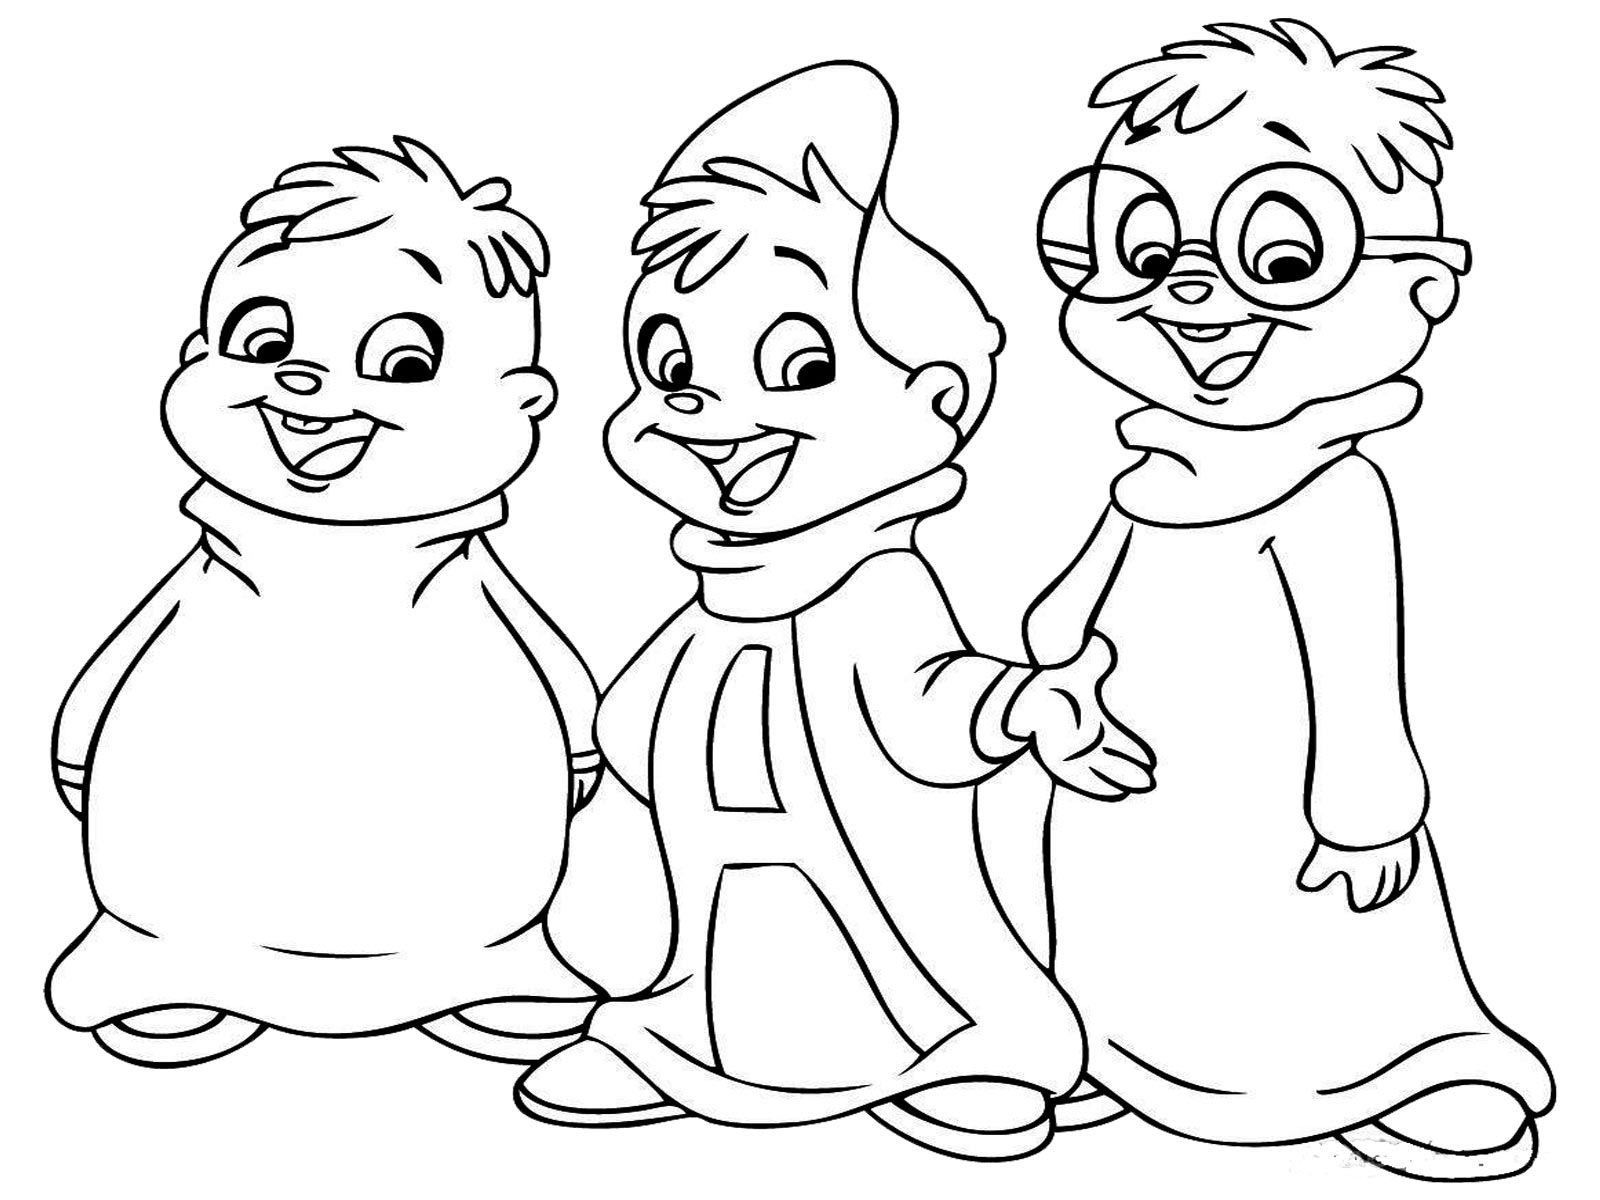 cartoon girl coloring pages - High Quality Coloring Pages